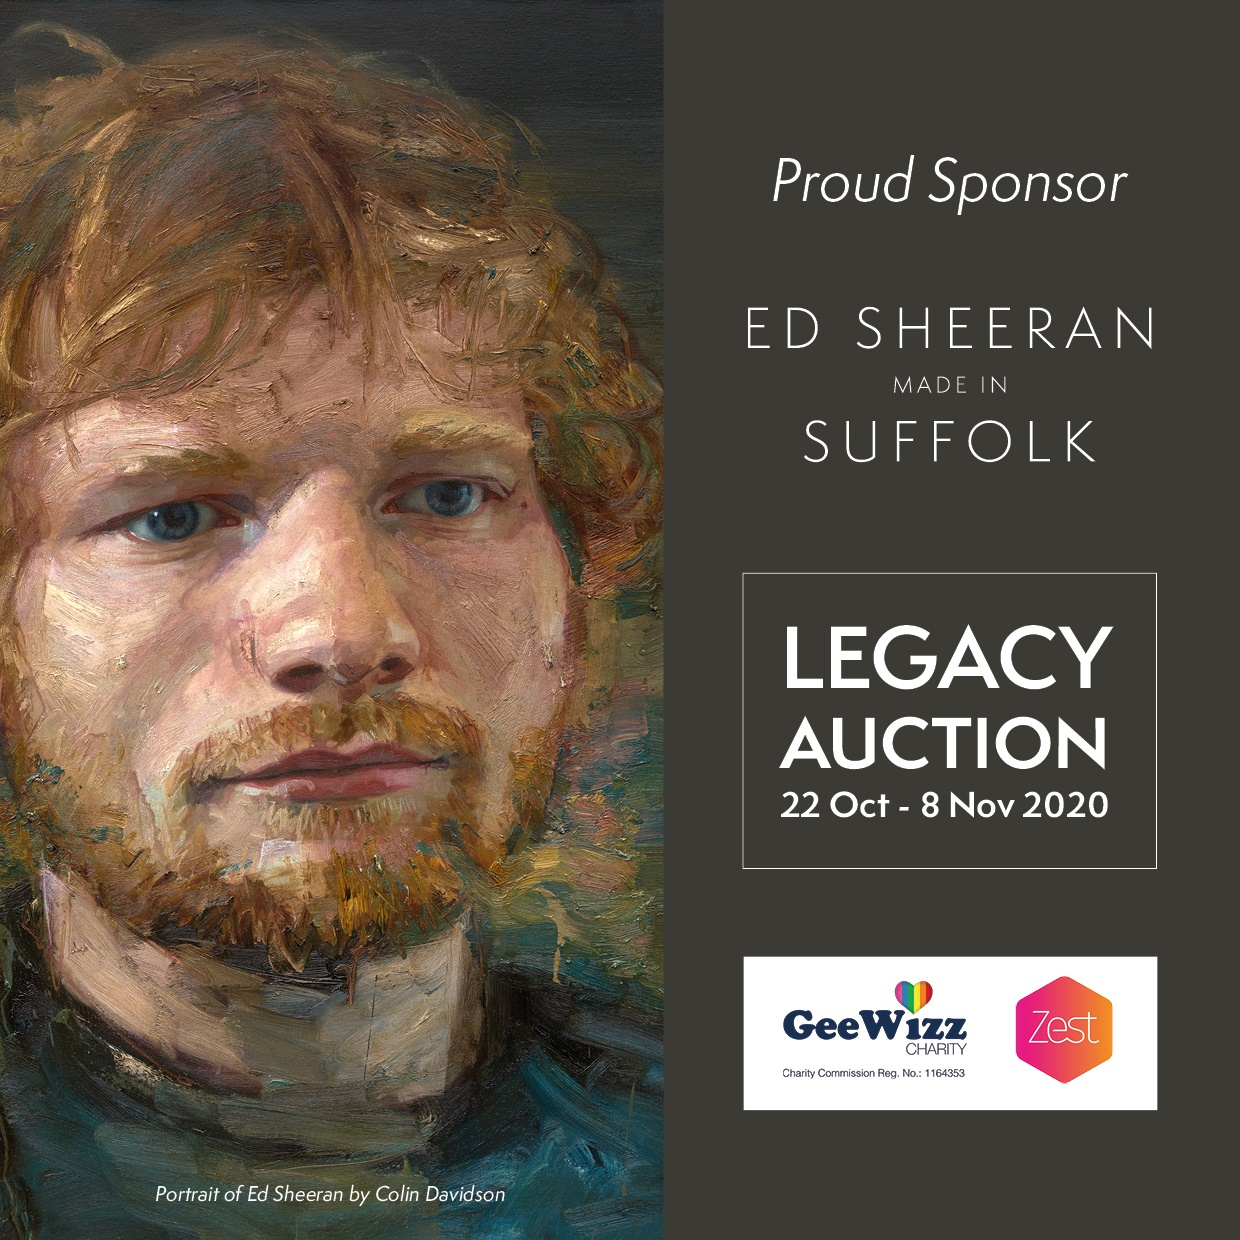 Ed Sheeran Made in Suffolk Global Legacy Auction